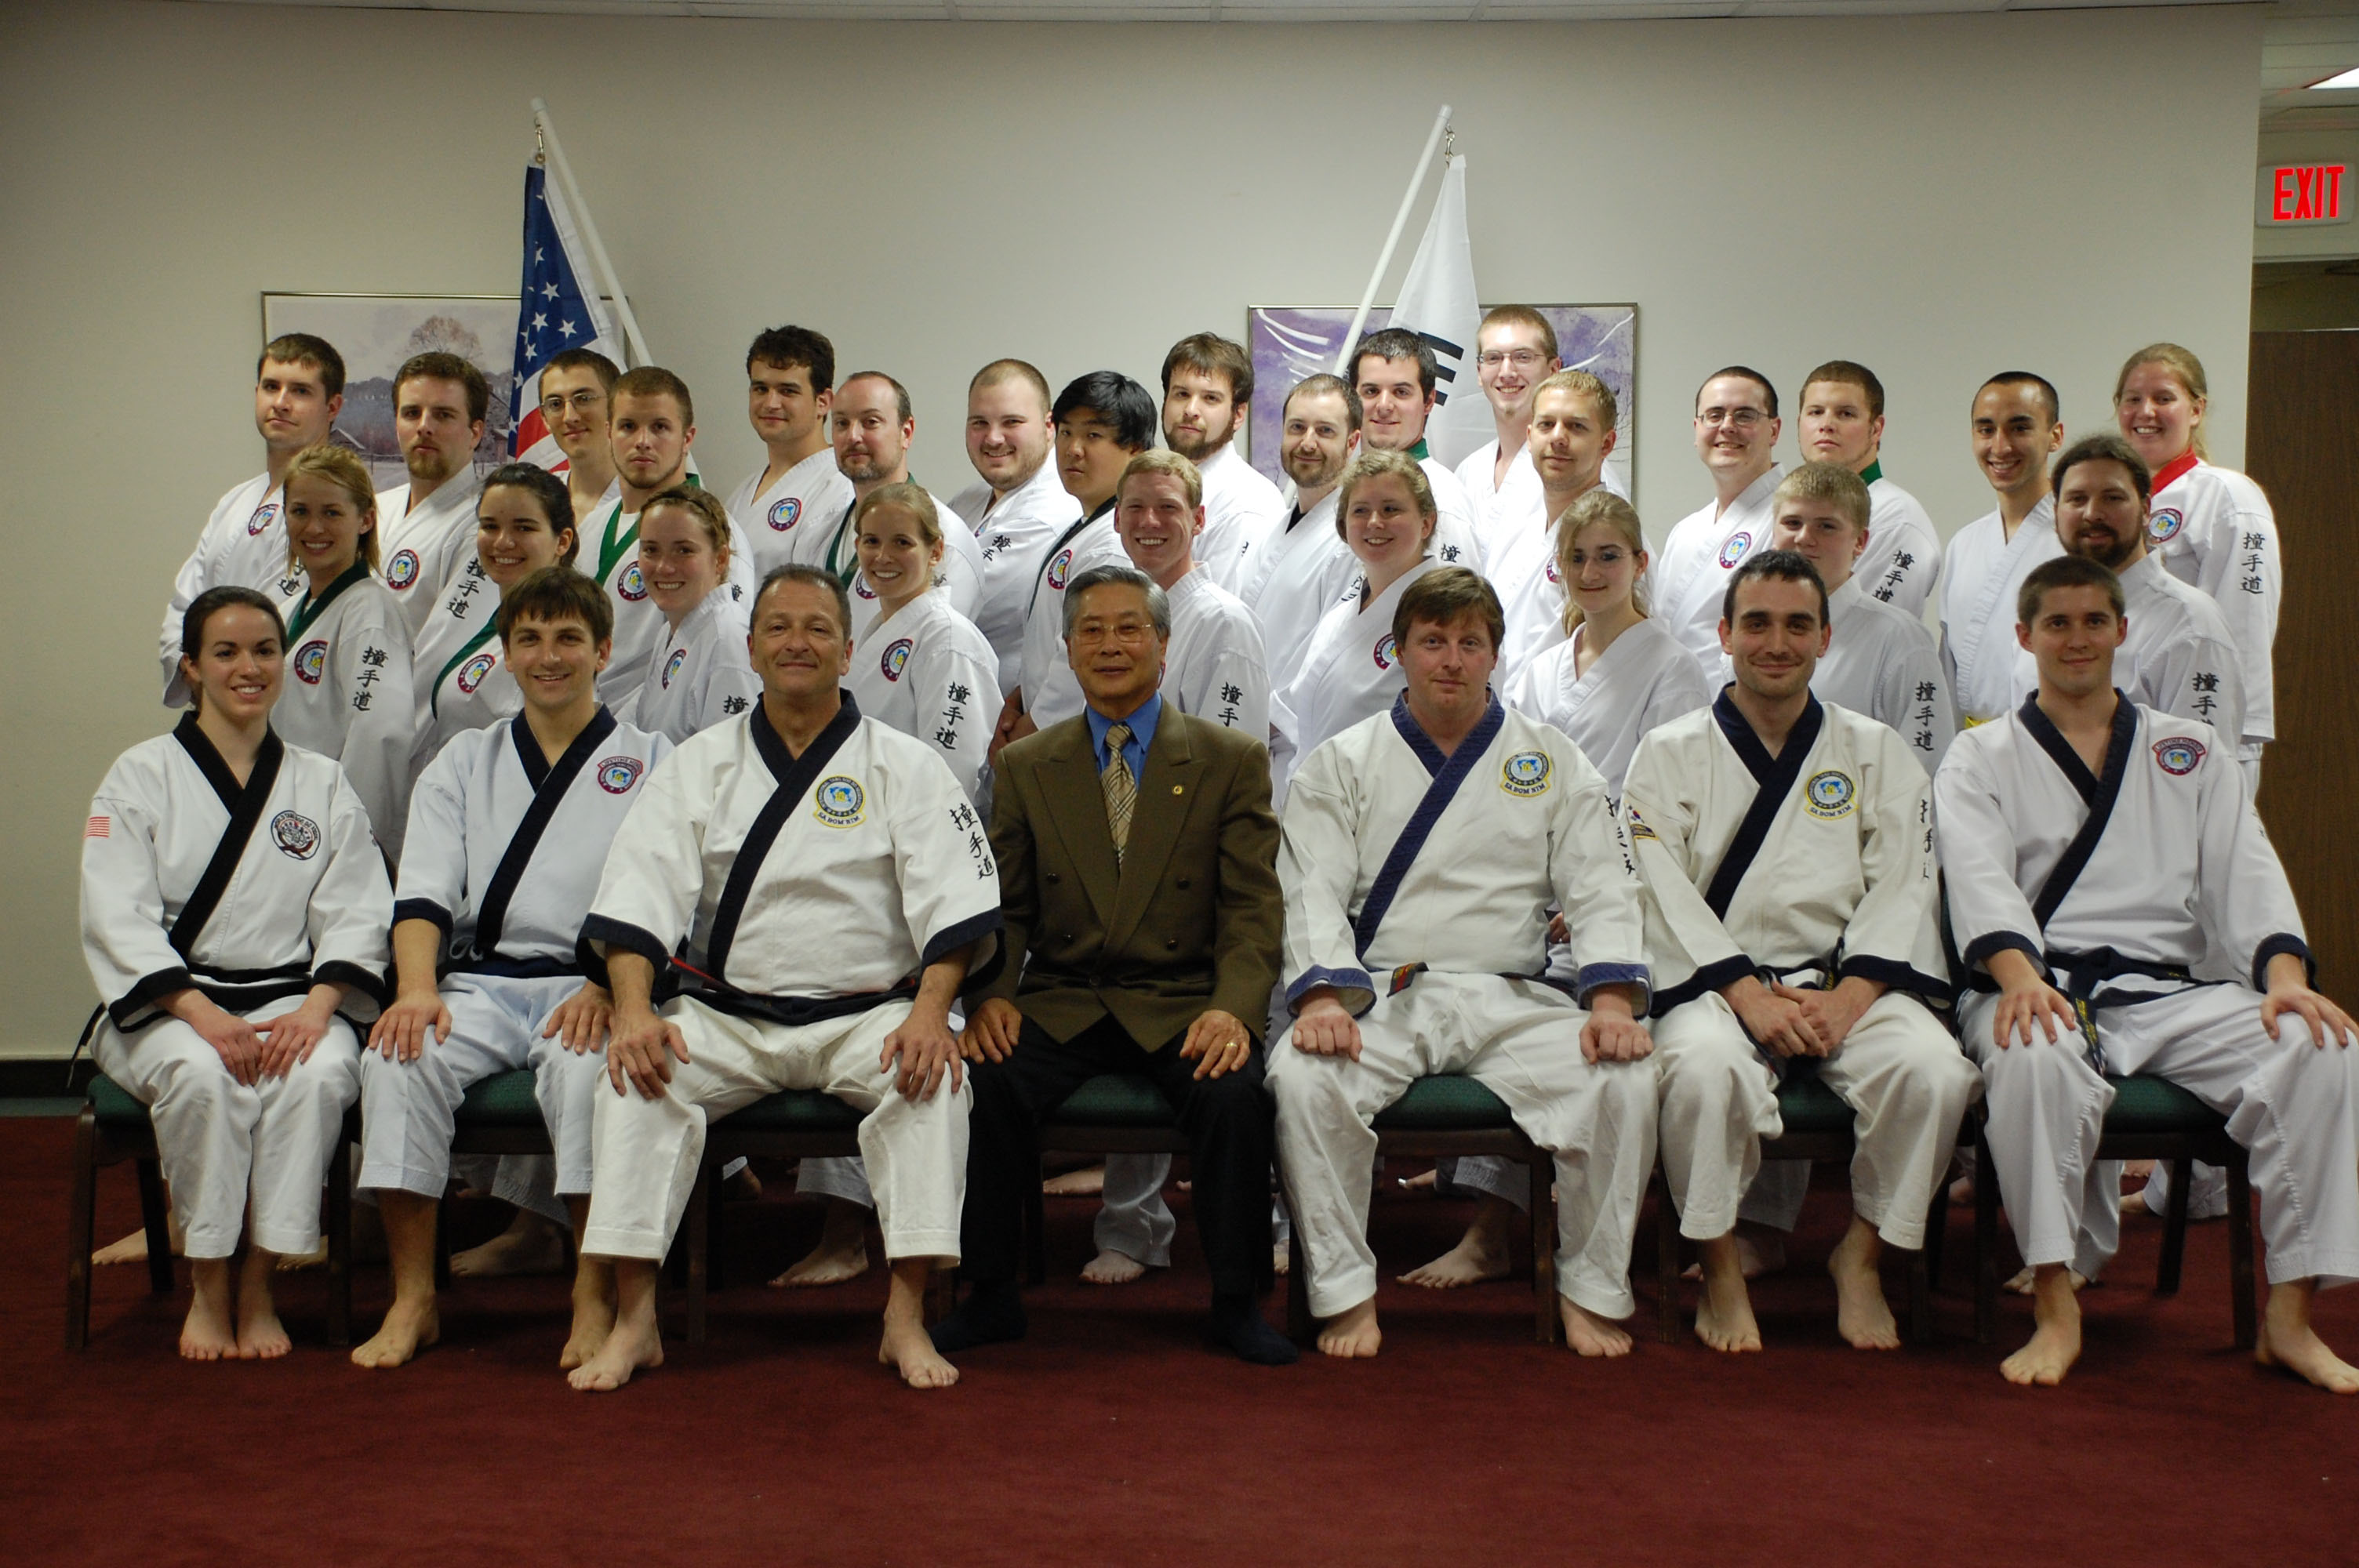 Members of the Tang Soo Do Karate Organization at Virginia Tech with Grand Master Kim.